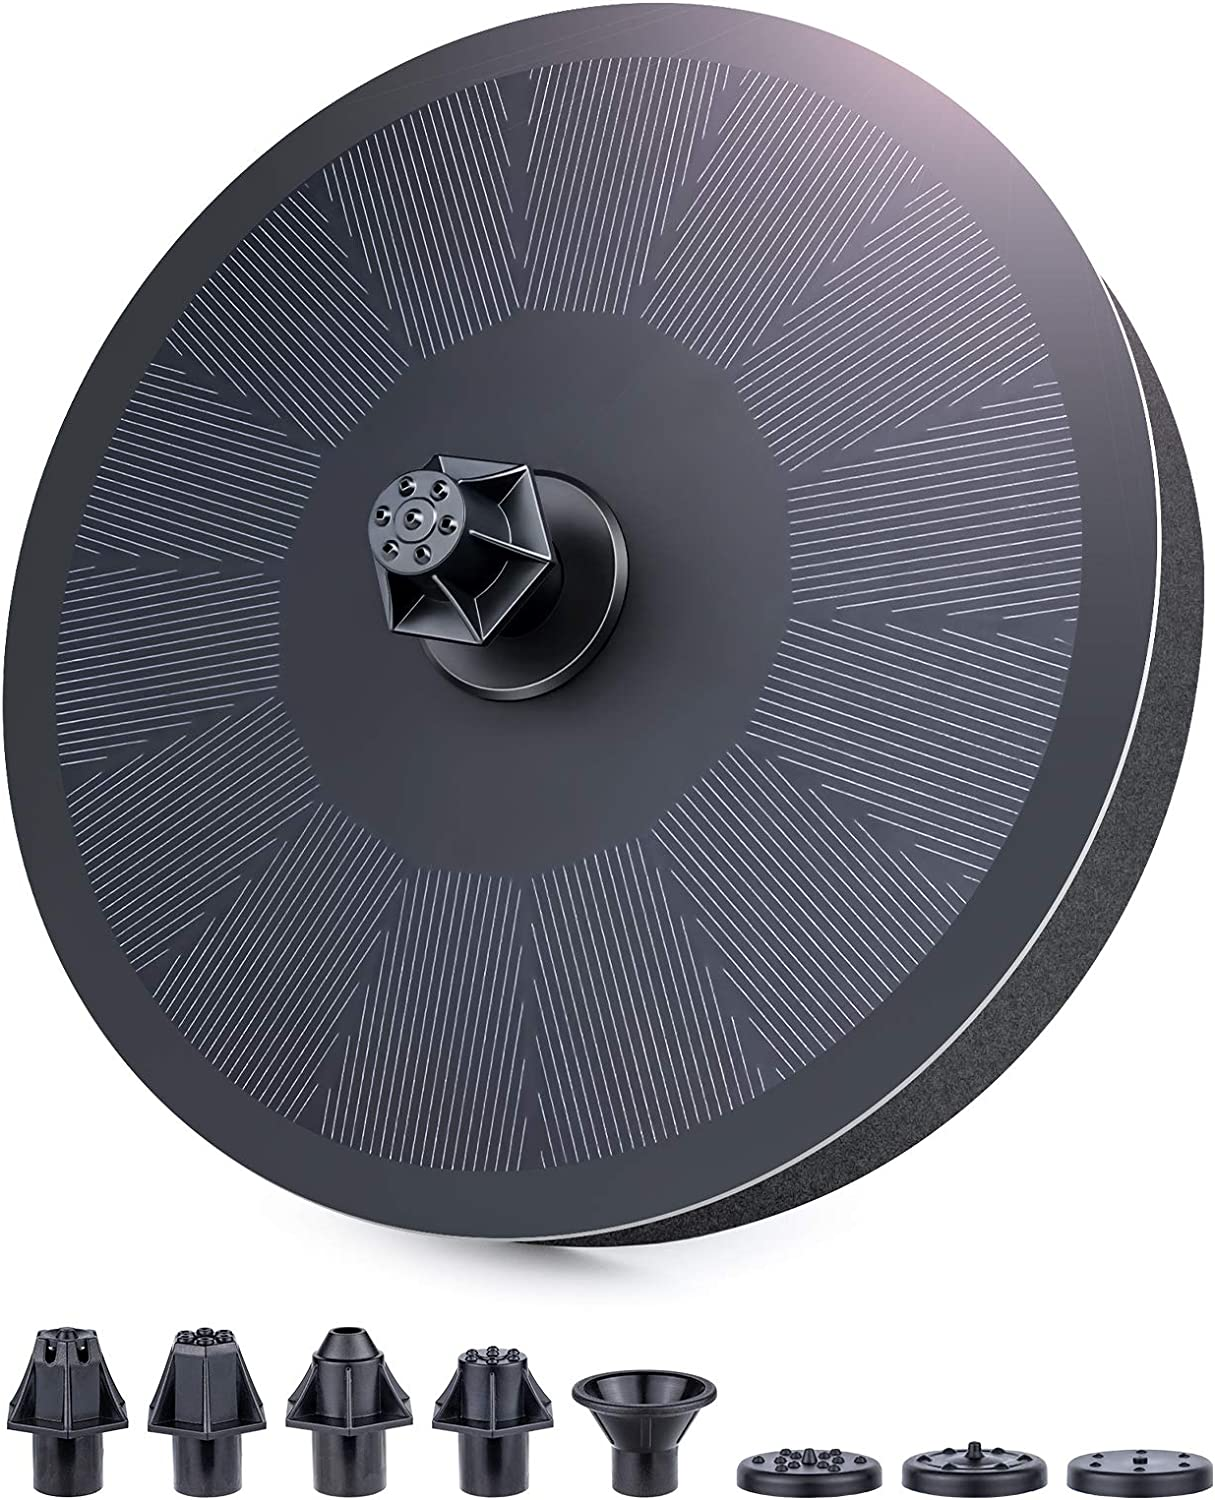 Upgraded 3W Solar Fountain Pump for Bird Bath, Bligli Solar Powered Floating Fountain with 7 Nozzles, 1200mAh Battery Backup and Fixed Set, Outdoor Water Fountain Pump for Garden Pond Pool Backyard(1)